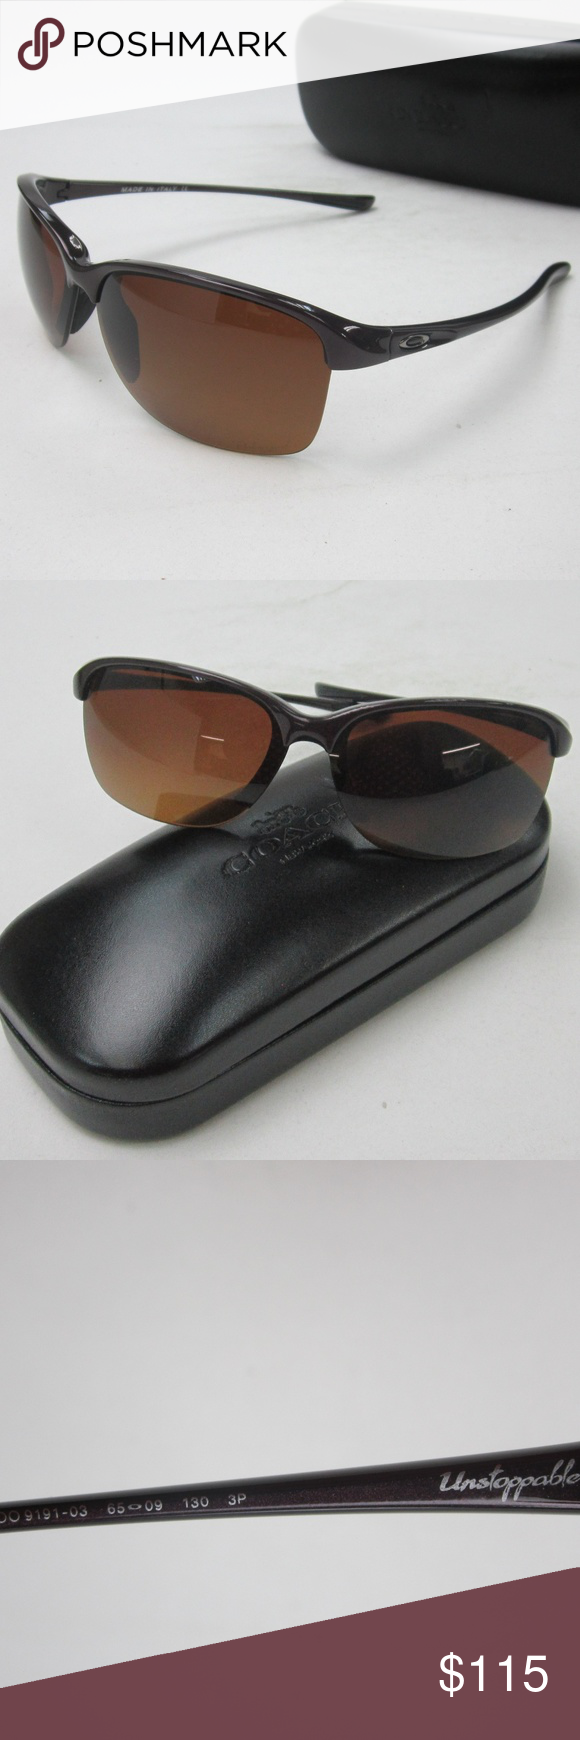 461343856d9 Oakley Unstoppable 9191-03 Sunglasses Italy OLG746 Oakley Unstoppable  OO9191-03 Women s Polarized